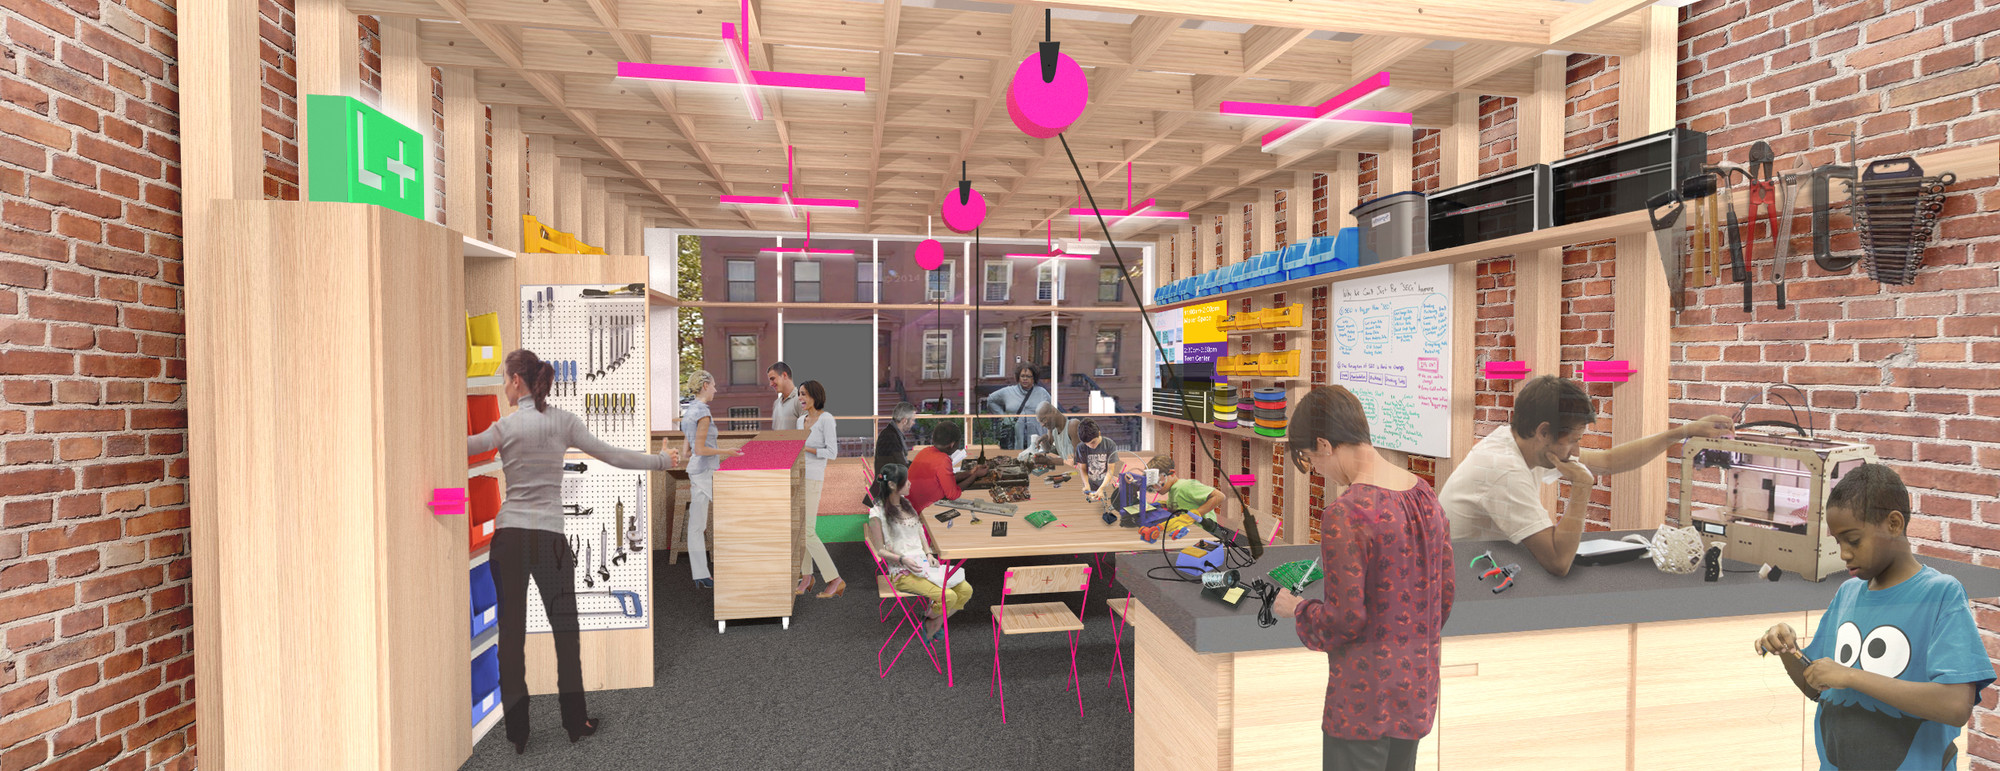 Five Design Teams Re Envision New Yorku0027s Public Libraries,Concept For  Storefront Outpost Maker